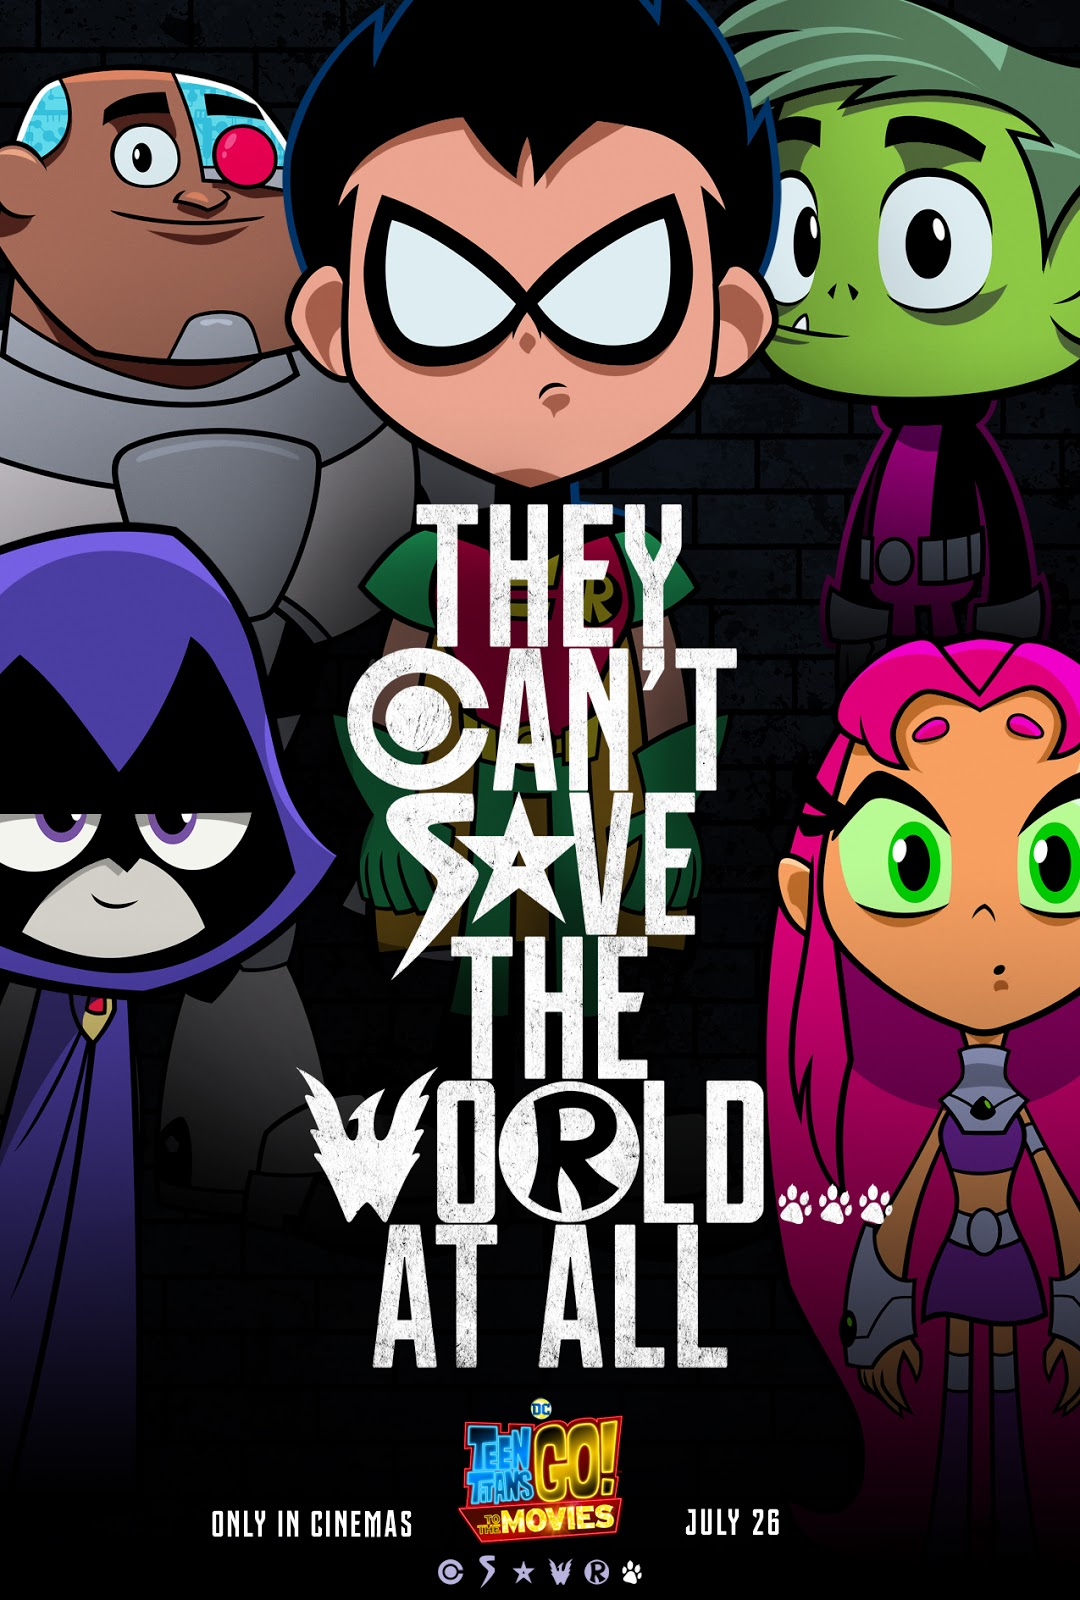 Teen Titans Go To The Movies Spoofs Justice League In Teaser Poster Sandal Voltus Marissa Series 1 It Seems Teens That All Major Superheroes Out There Are Starring Their Own Movieseveryone But Is